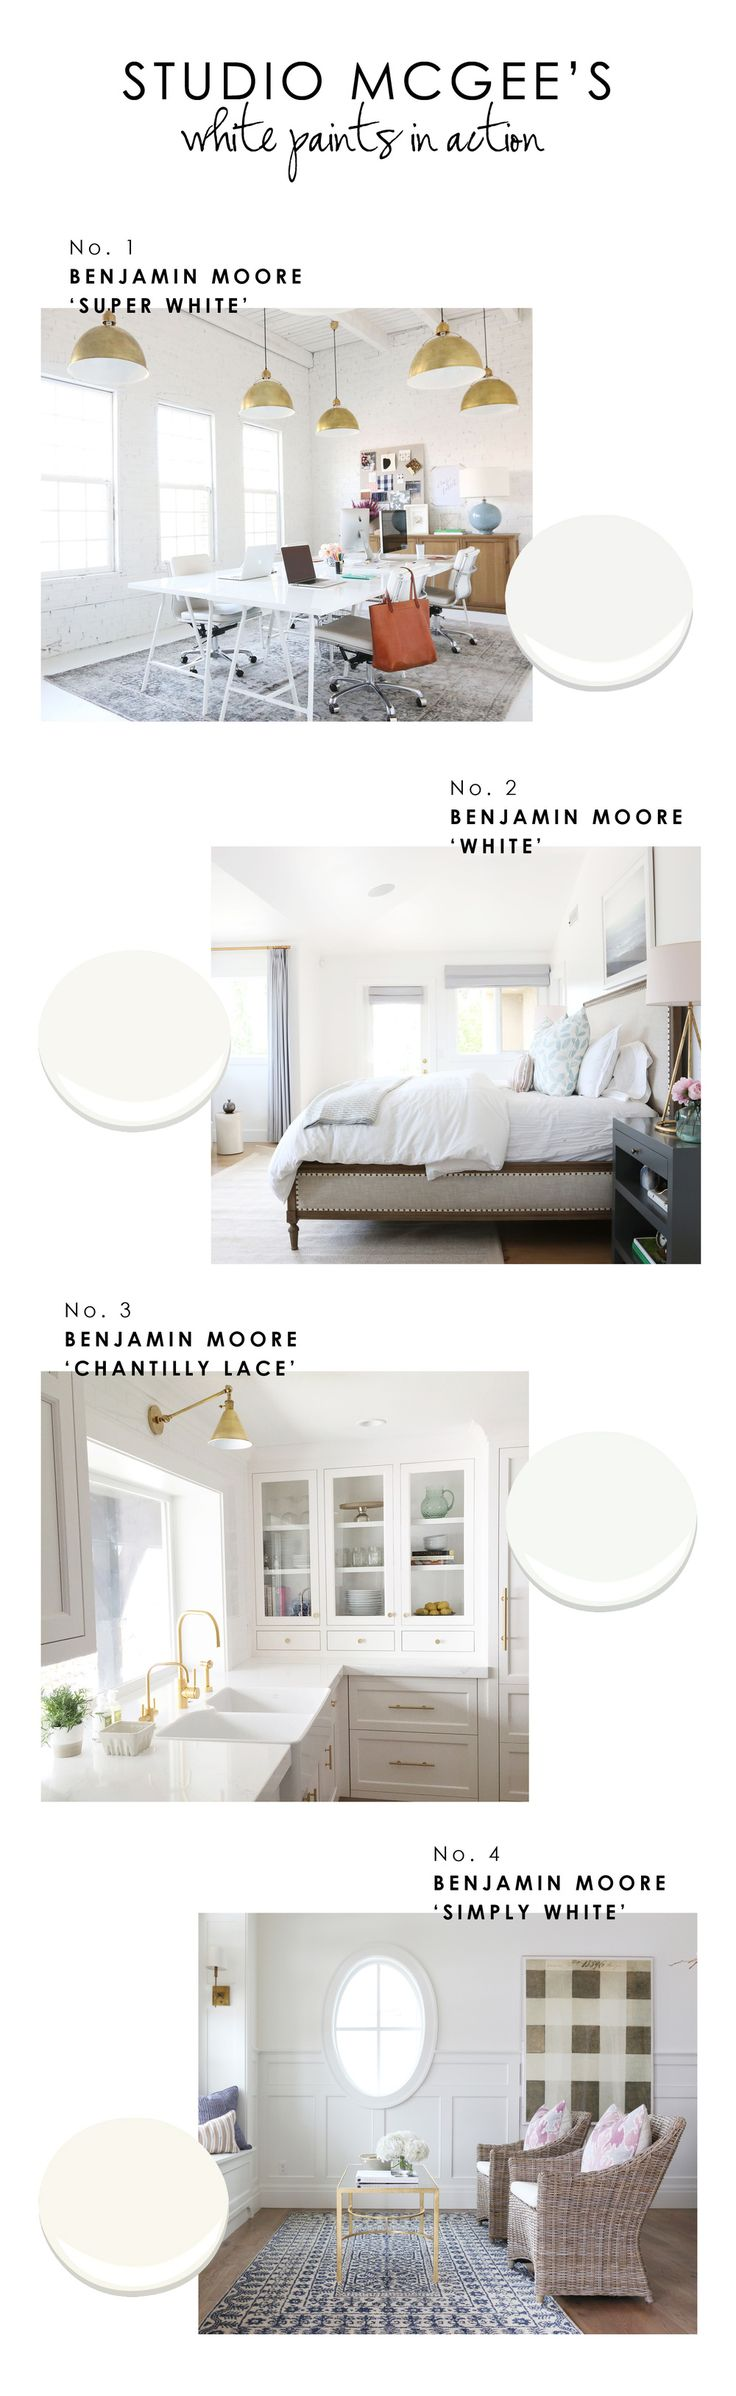 Best white paints from interior design experts at Studio McGee